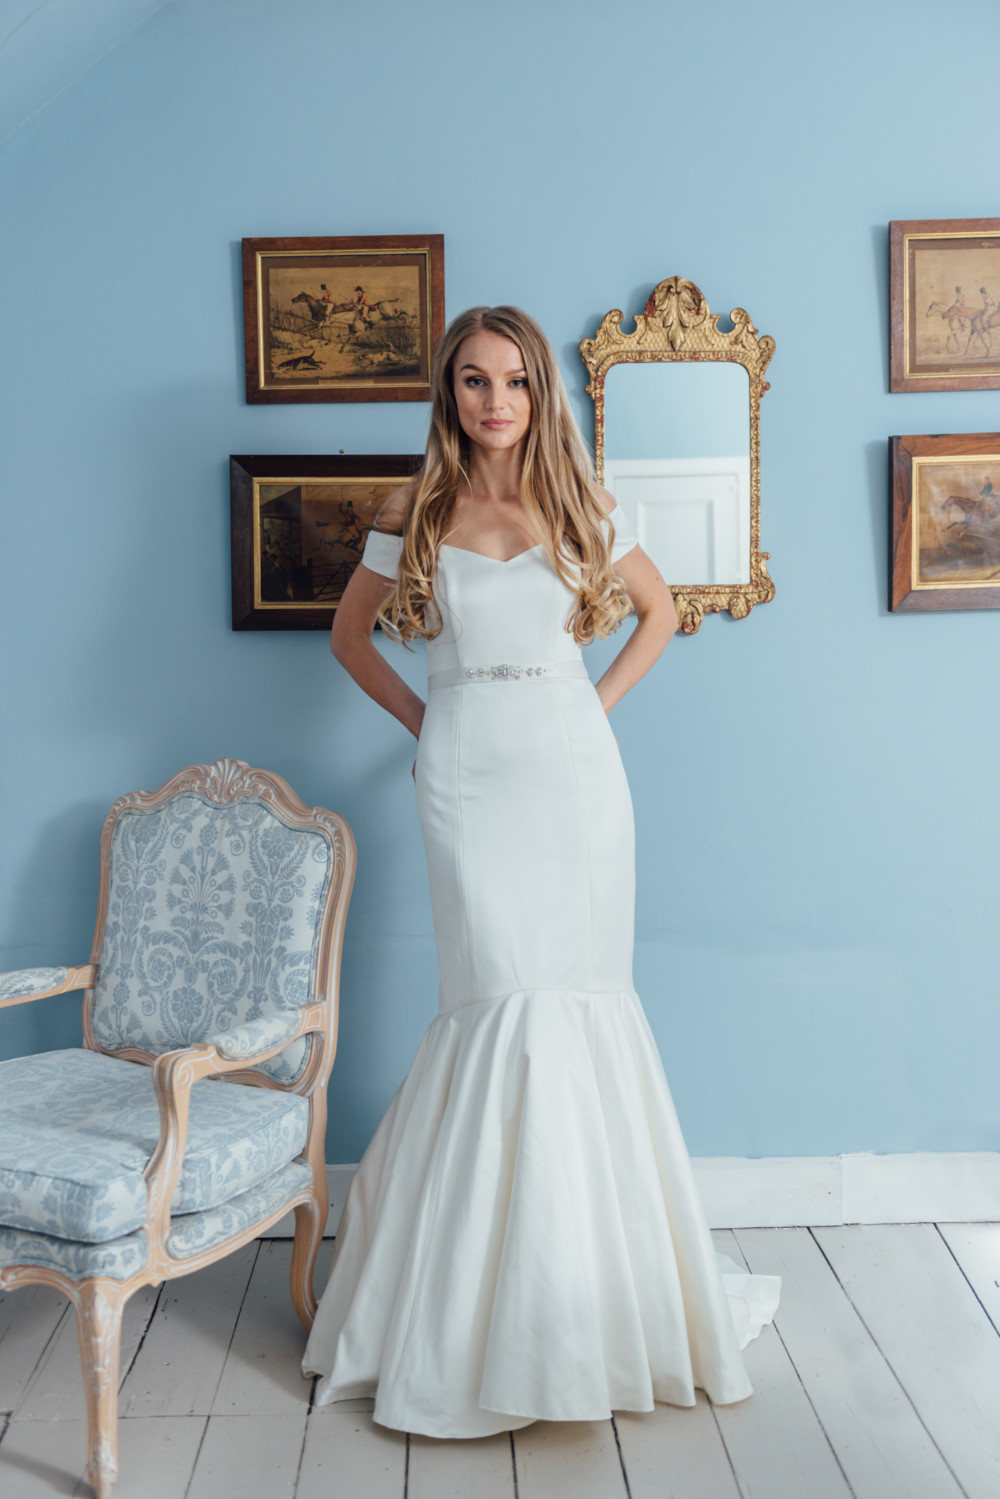 Awesome Wedding Dresses Aberdeen Adornment - All Wedding Dresses ...